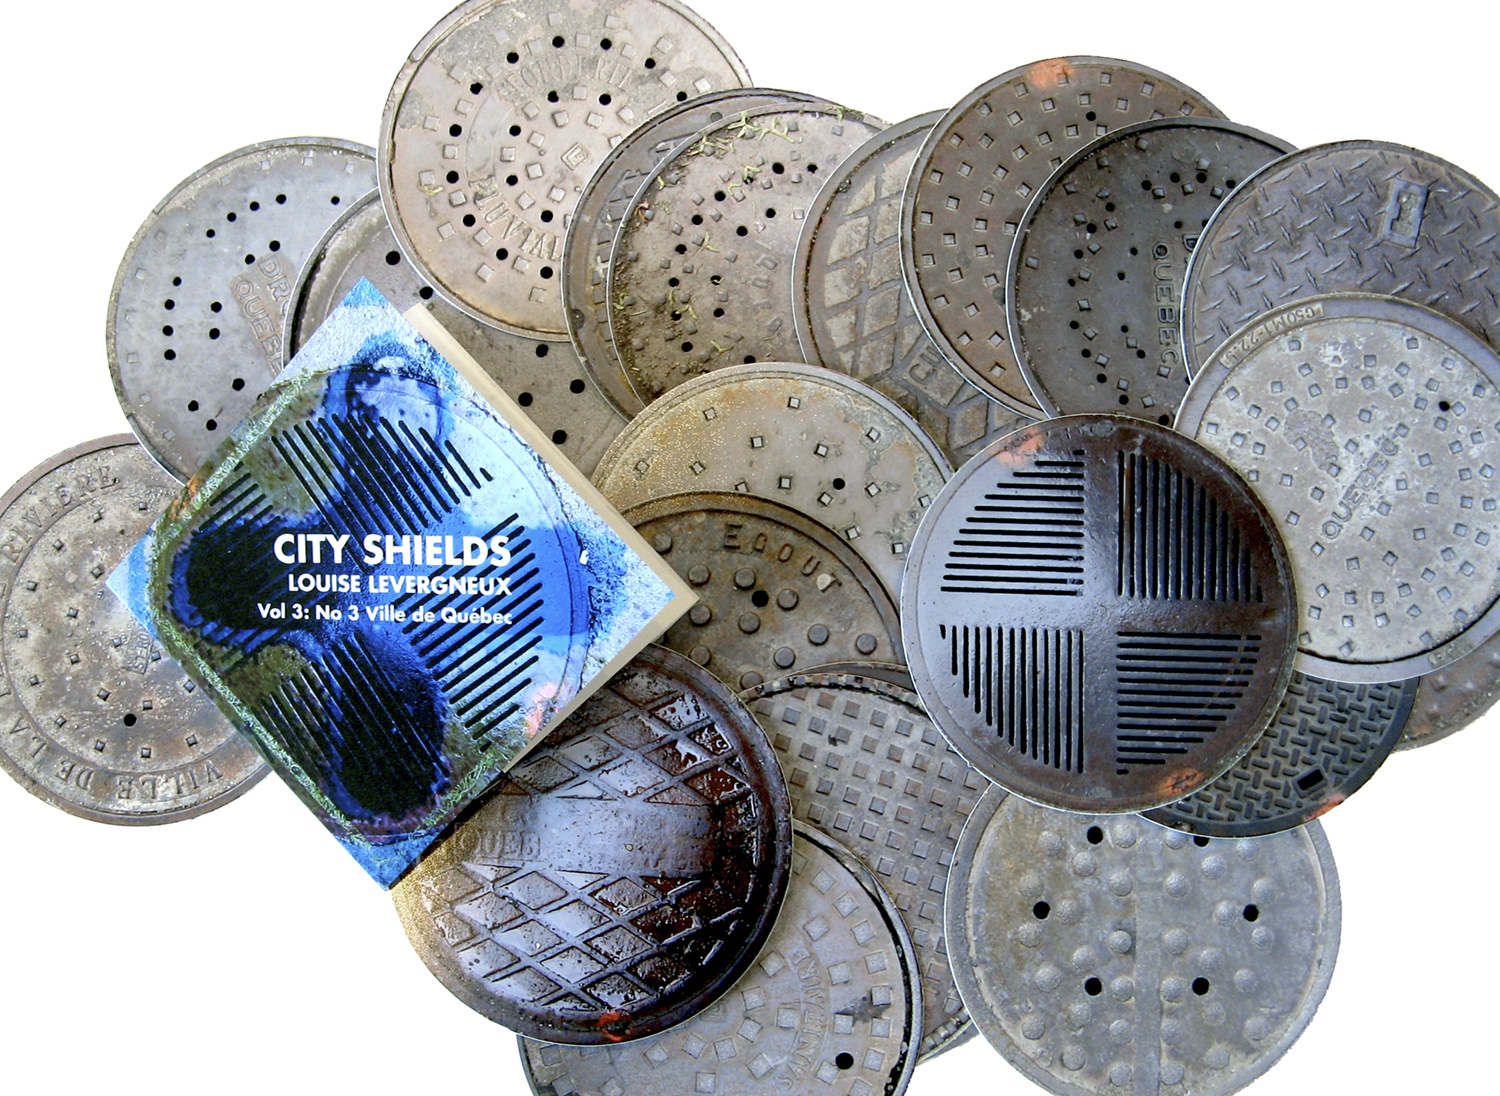 View of the manholes covers represented in the ville de Québec volume, Vol 3: No3